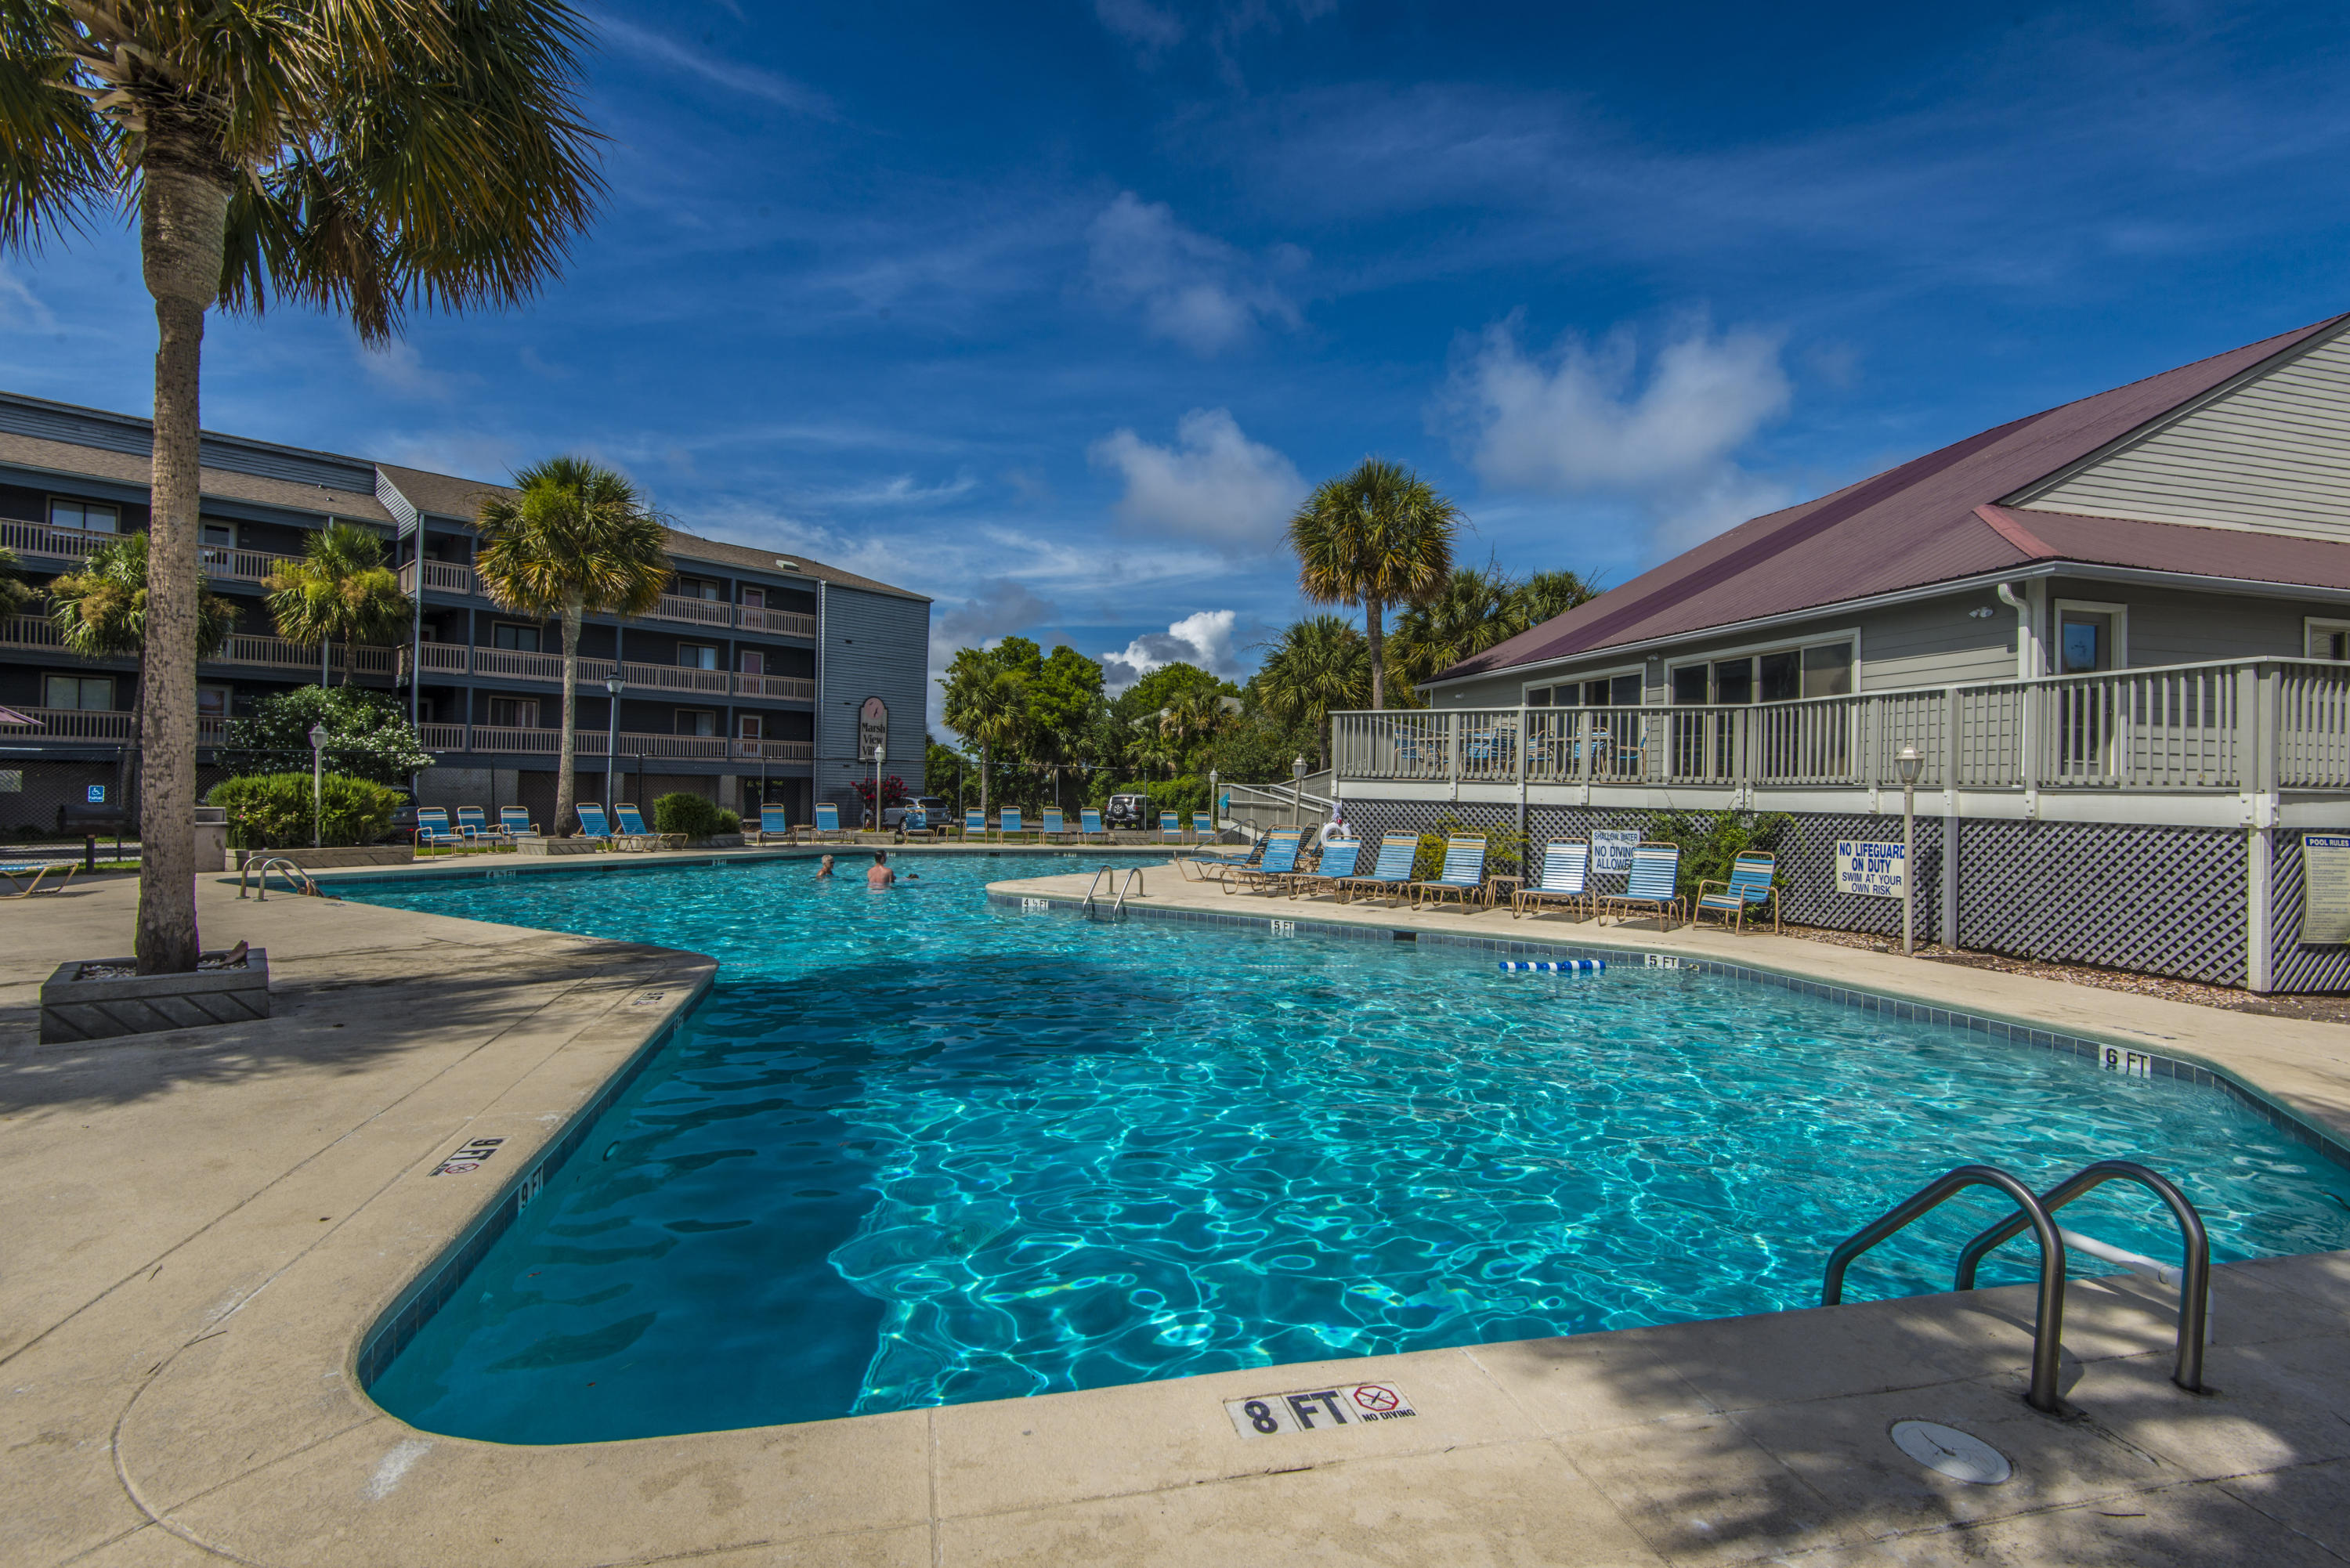 Mariners Cay Homes For Sale - 71 Mariners Cay, Folly Beach, SC - 6